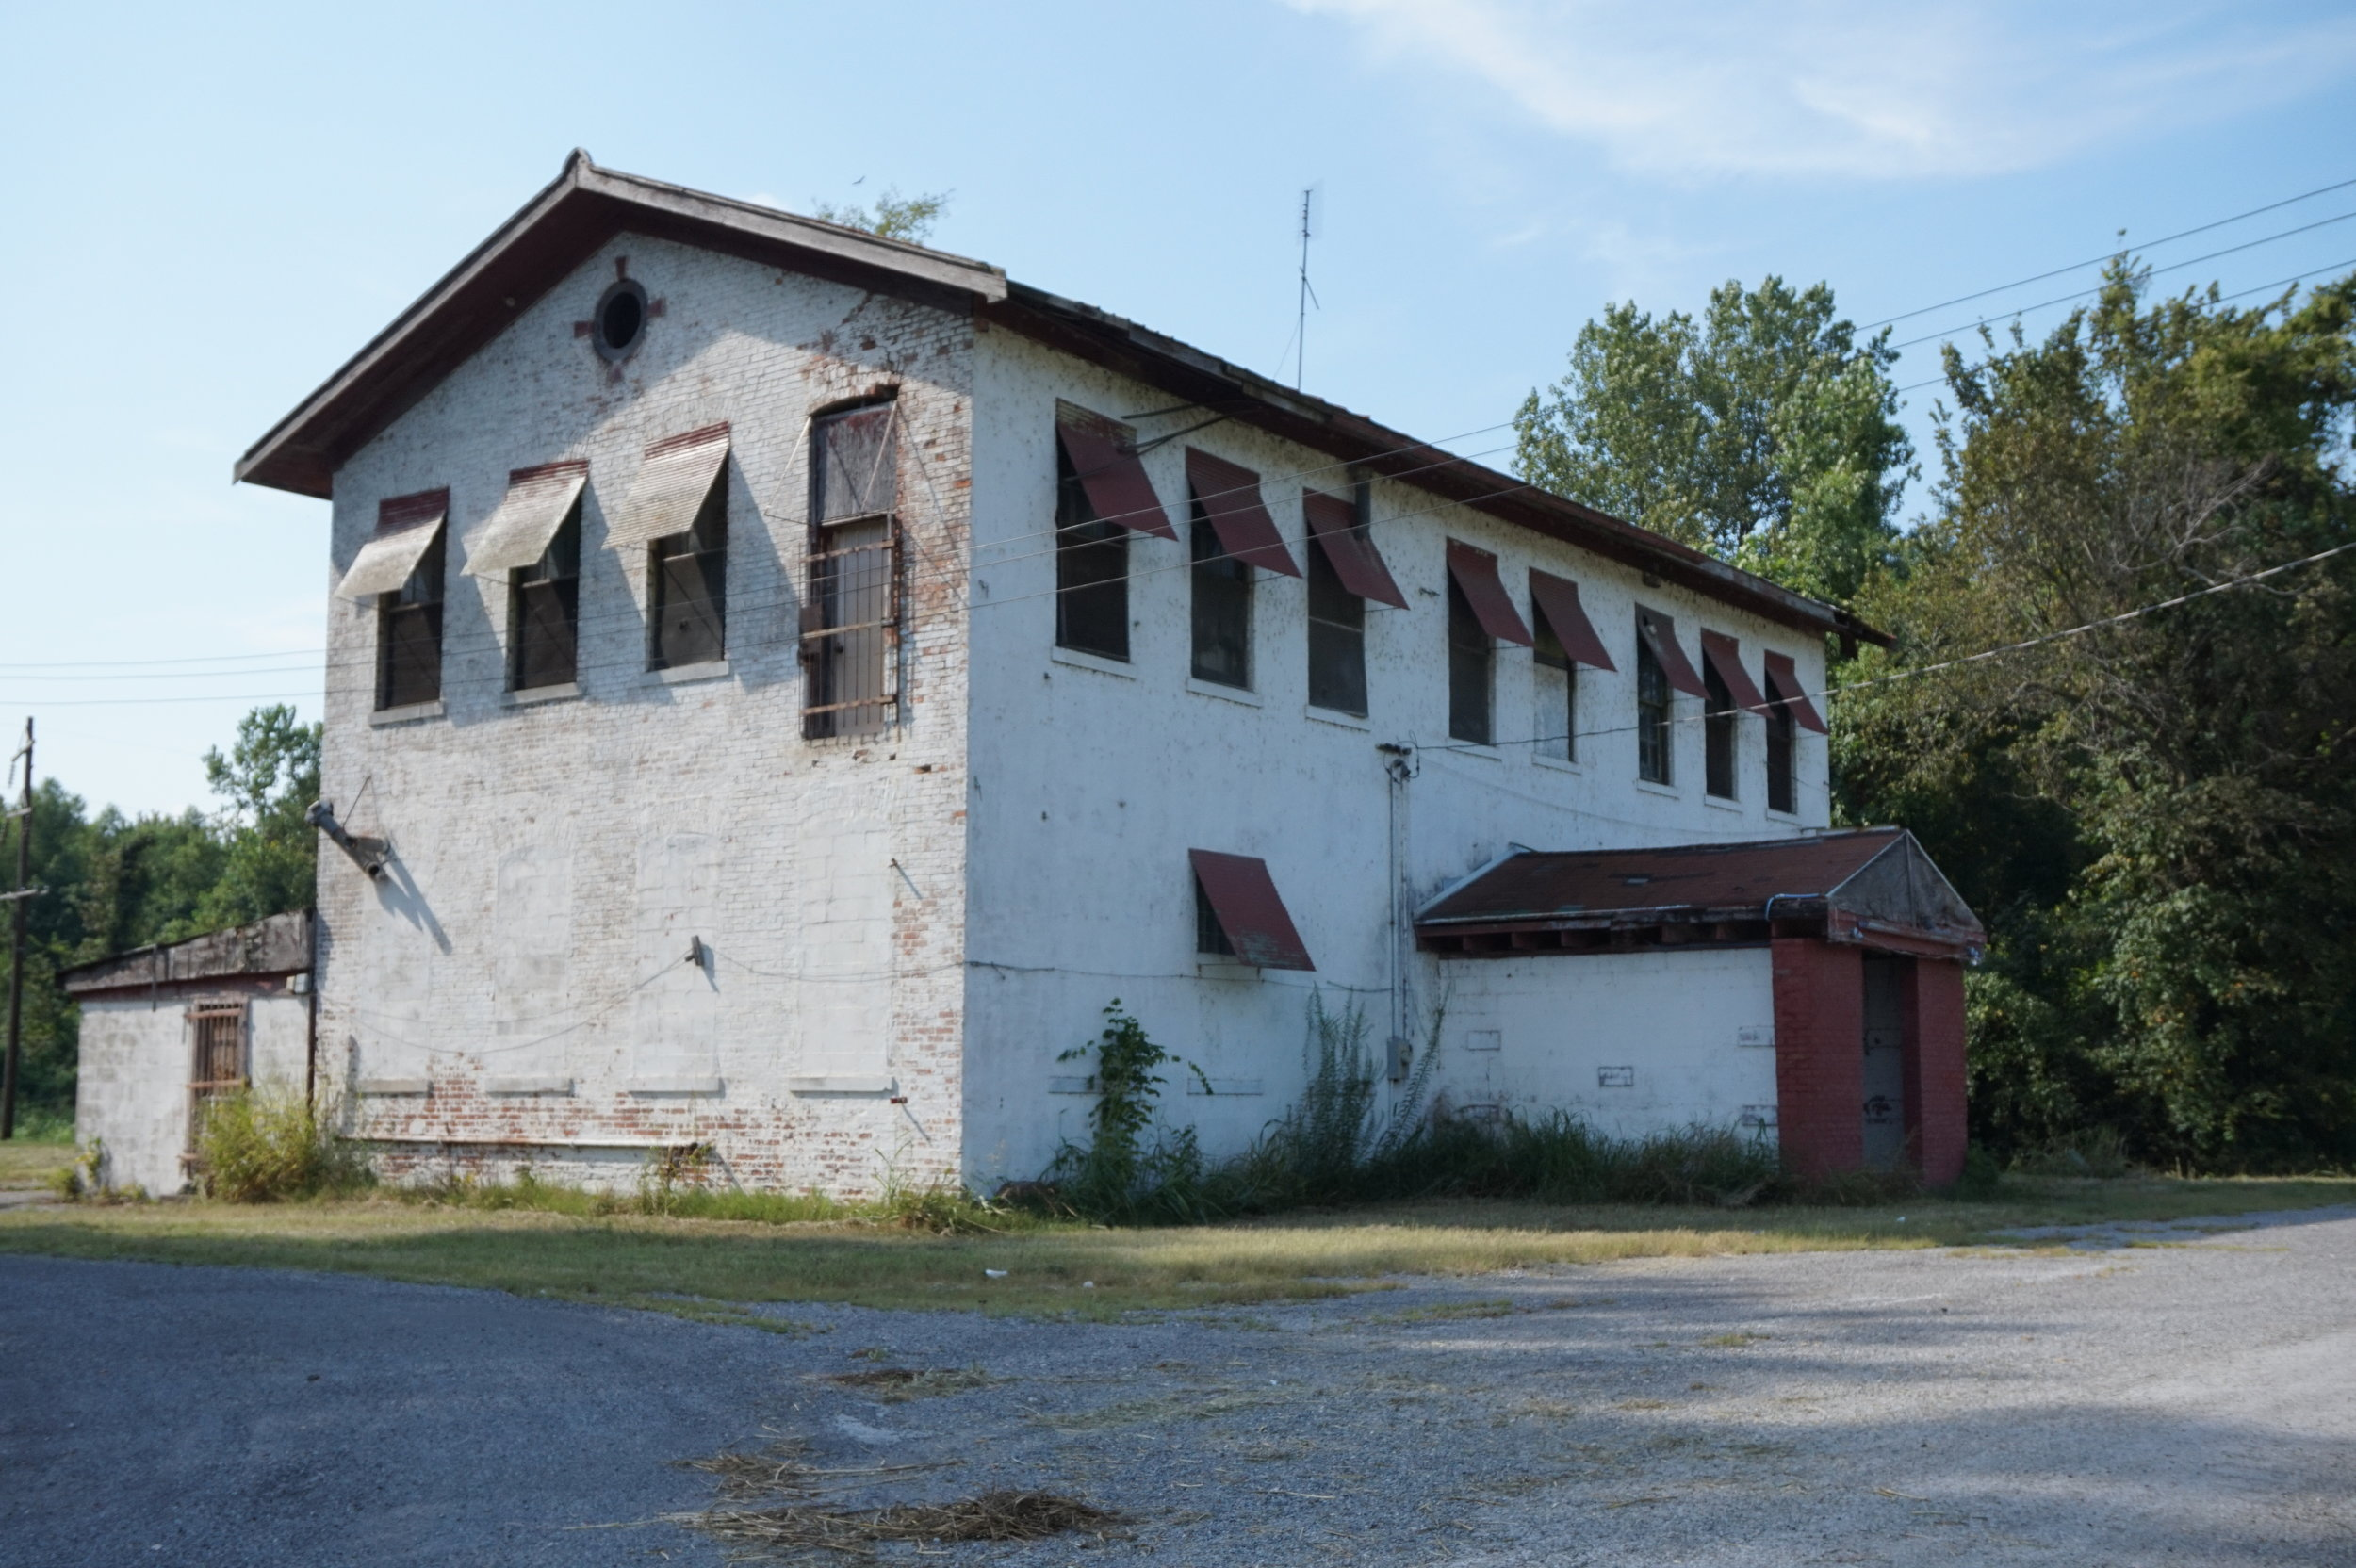 Abandoned tavern; this is the building that appears in most online references to Future City.